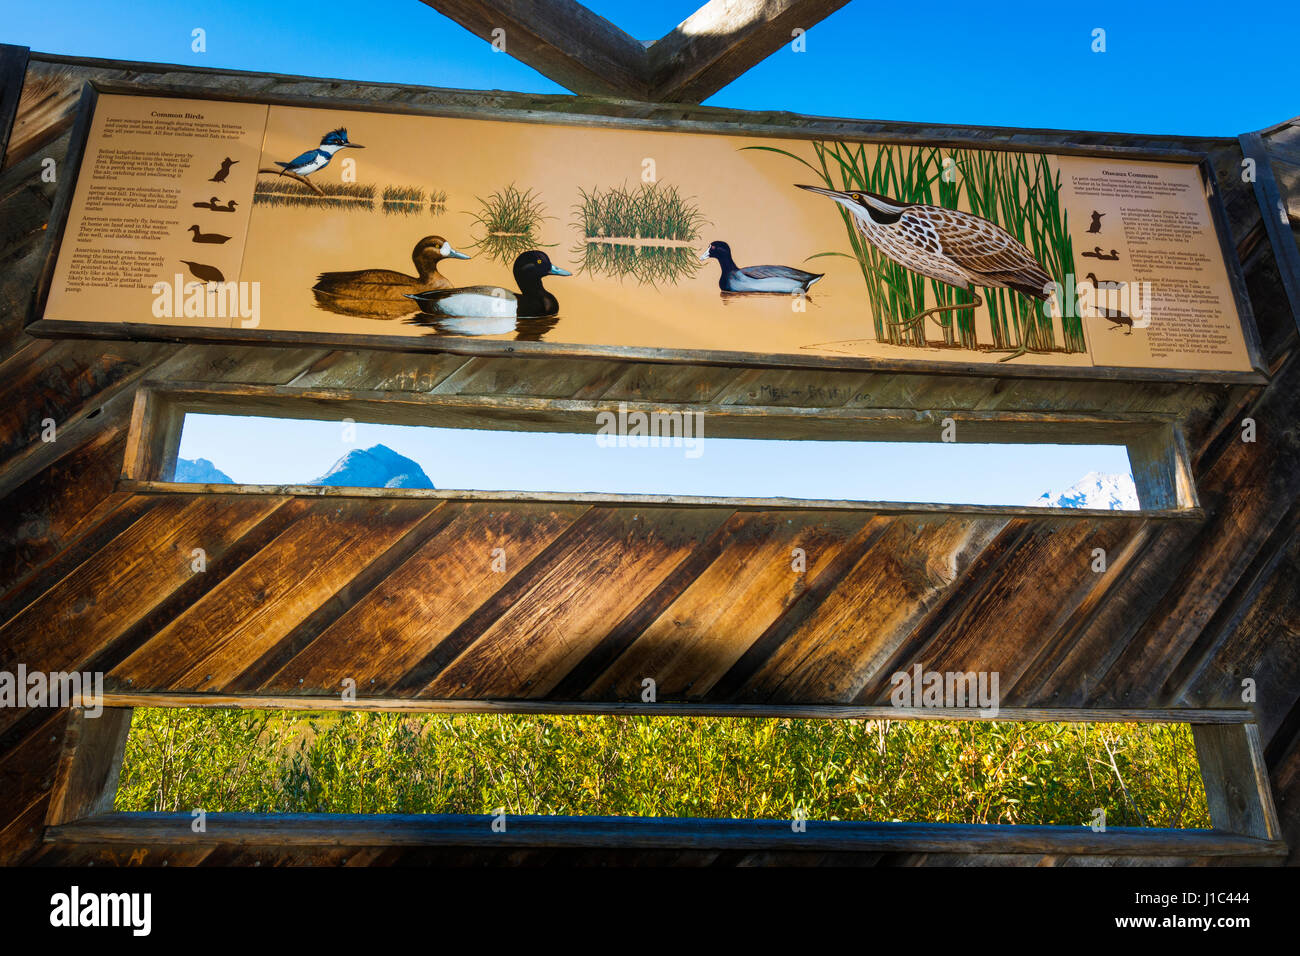 Interpretive sign in a wildlife blind at Cave and Basin National Historic Site, Banff National Park, Alberta, Canada Stock Photo